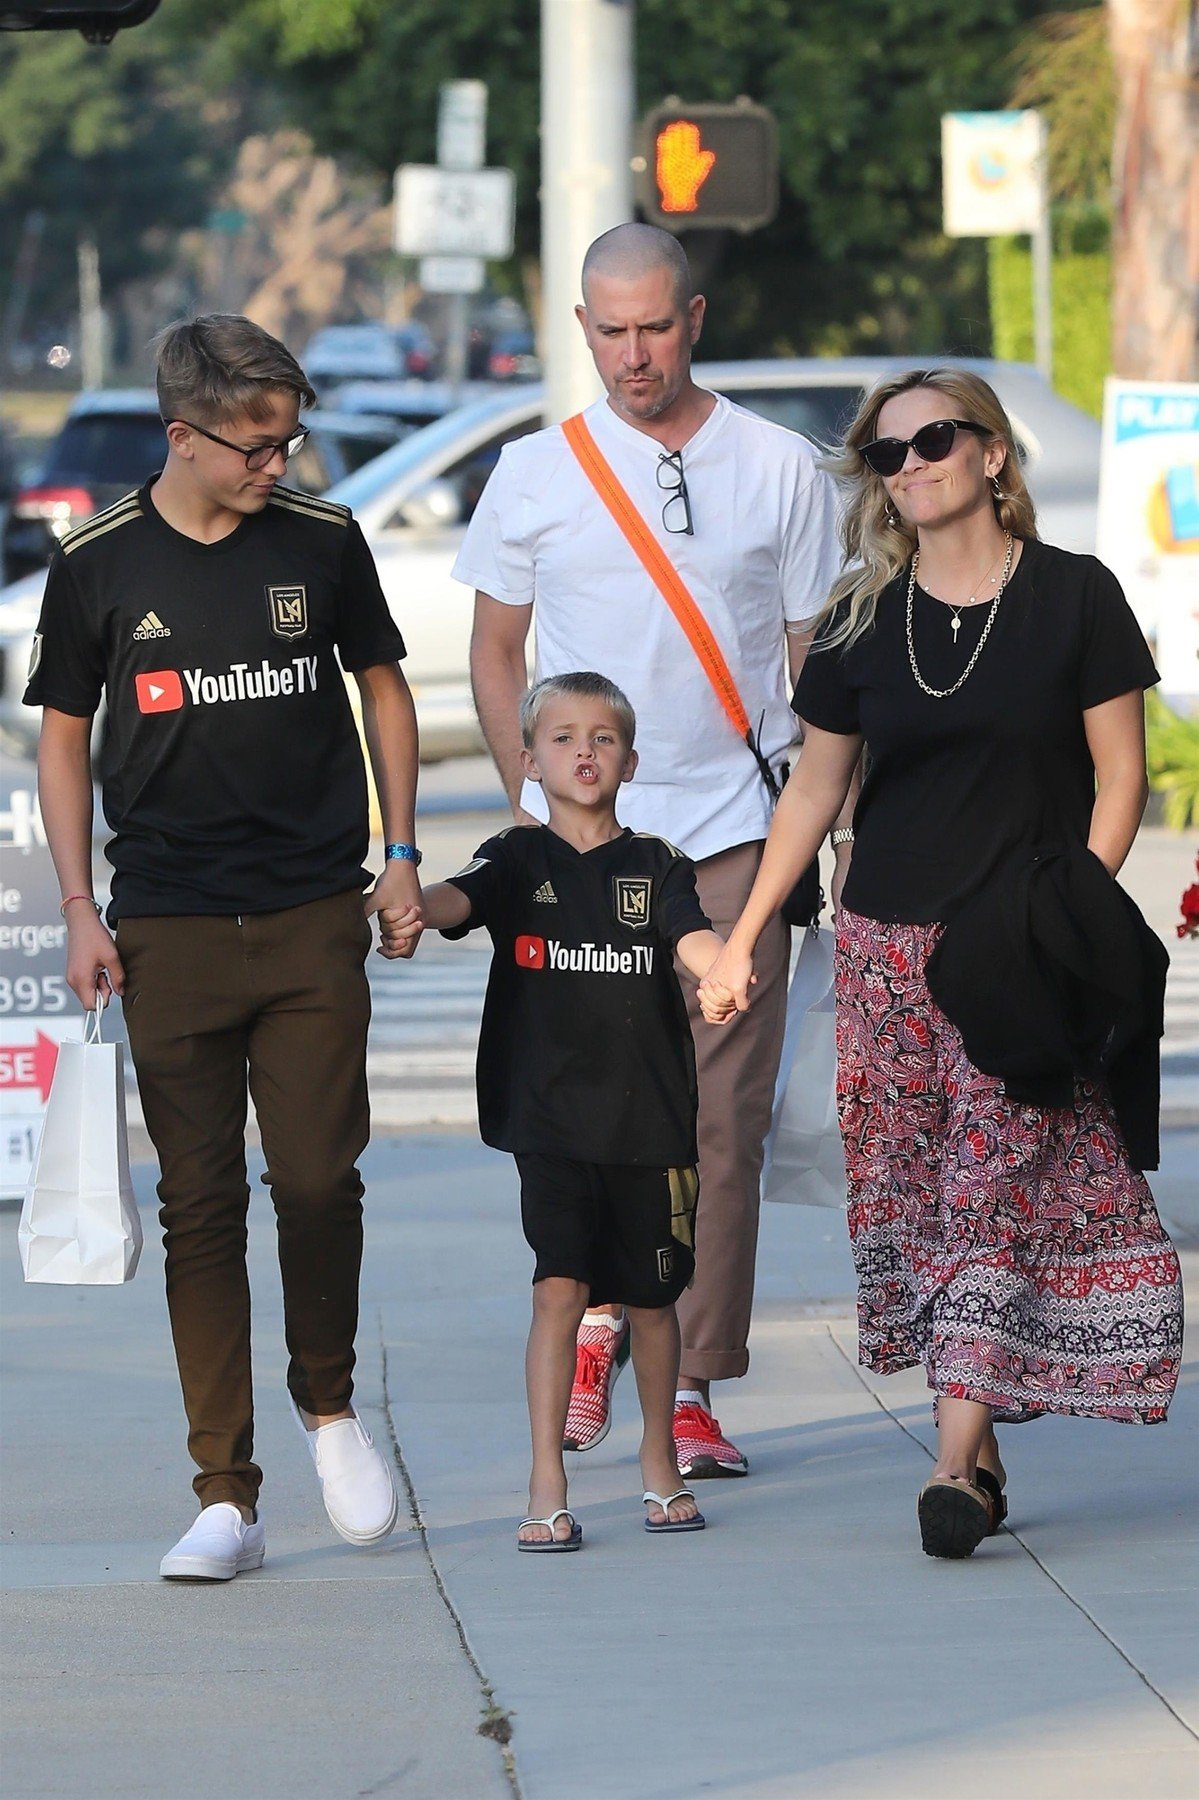 Brentwood, CA  - Reese Witherspoon held hands with her husband Jim Toth as she and her two sons Tennessee and Deacon Phillippe left Amici restaurant after an early Sunday dinner in Brentwood.  Pictured: Reese Witherspoon, Jim Toth, Tennessee Phillippe, Deacon Phillippe  BACKGRID USA 19 AUGUST 2018, Image: 383182899, License: Rights-managed, Restrictions: , Model Release: no, Credit line: Profimedia, AKM-GSI